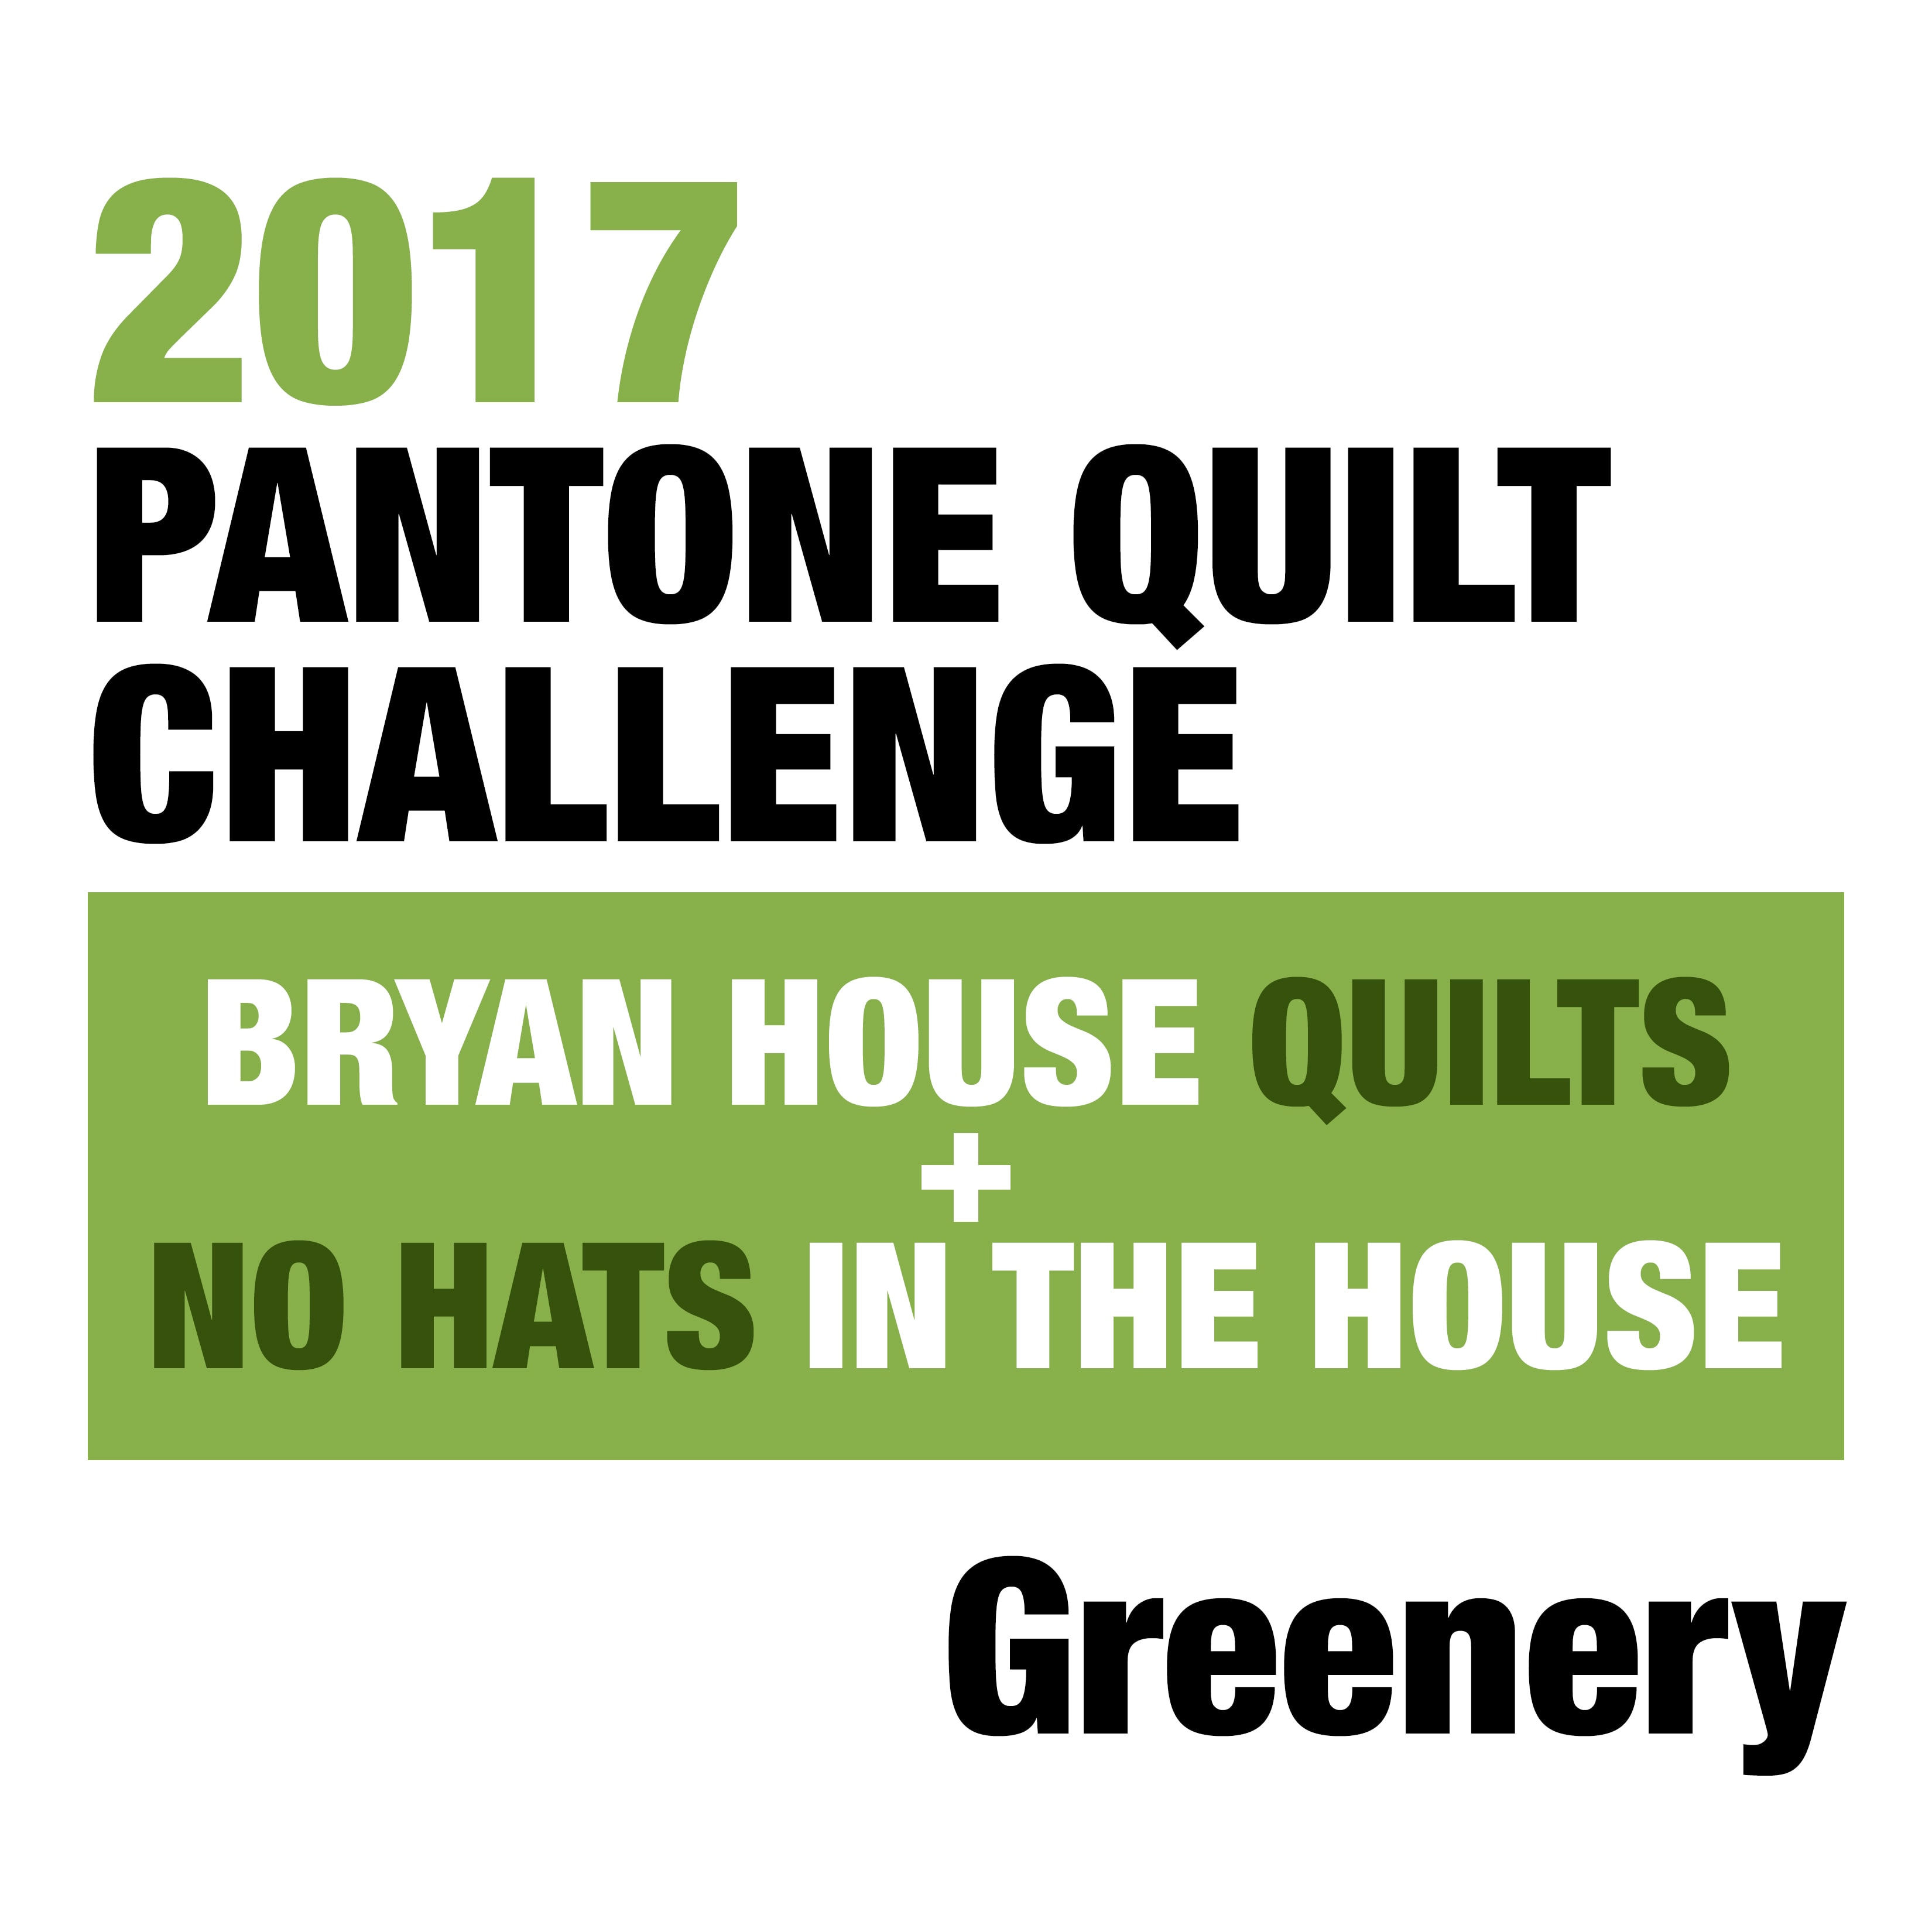 Greenery Pantone 2017 Pantone Quilt Challenge Greenery Edition Bryan House Quilts